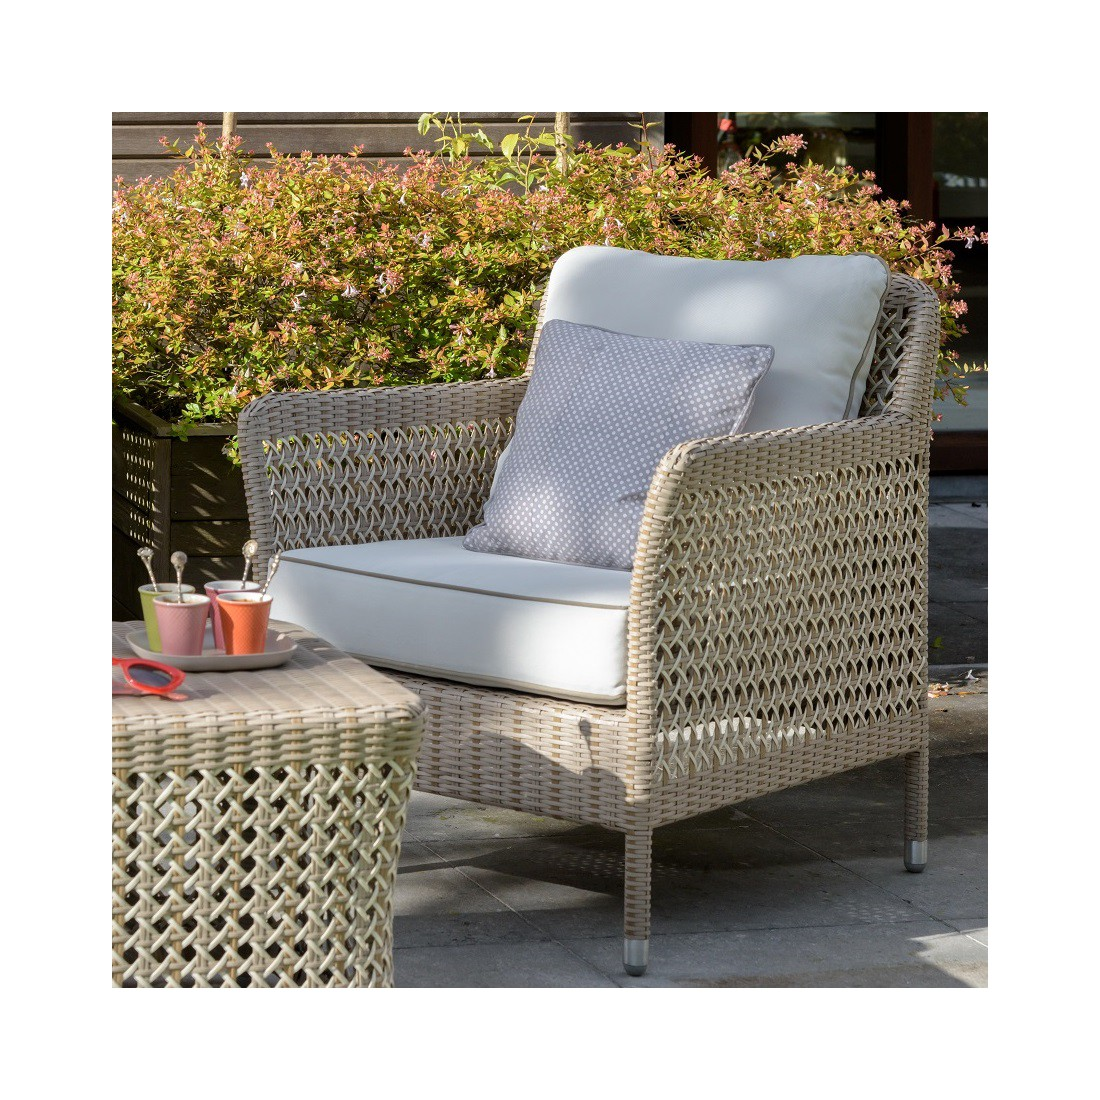 Riverside Salon De Jardin Fauteuil Jardin Carrefour Carrefour La Collection